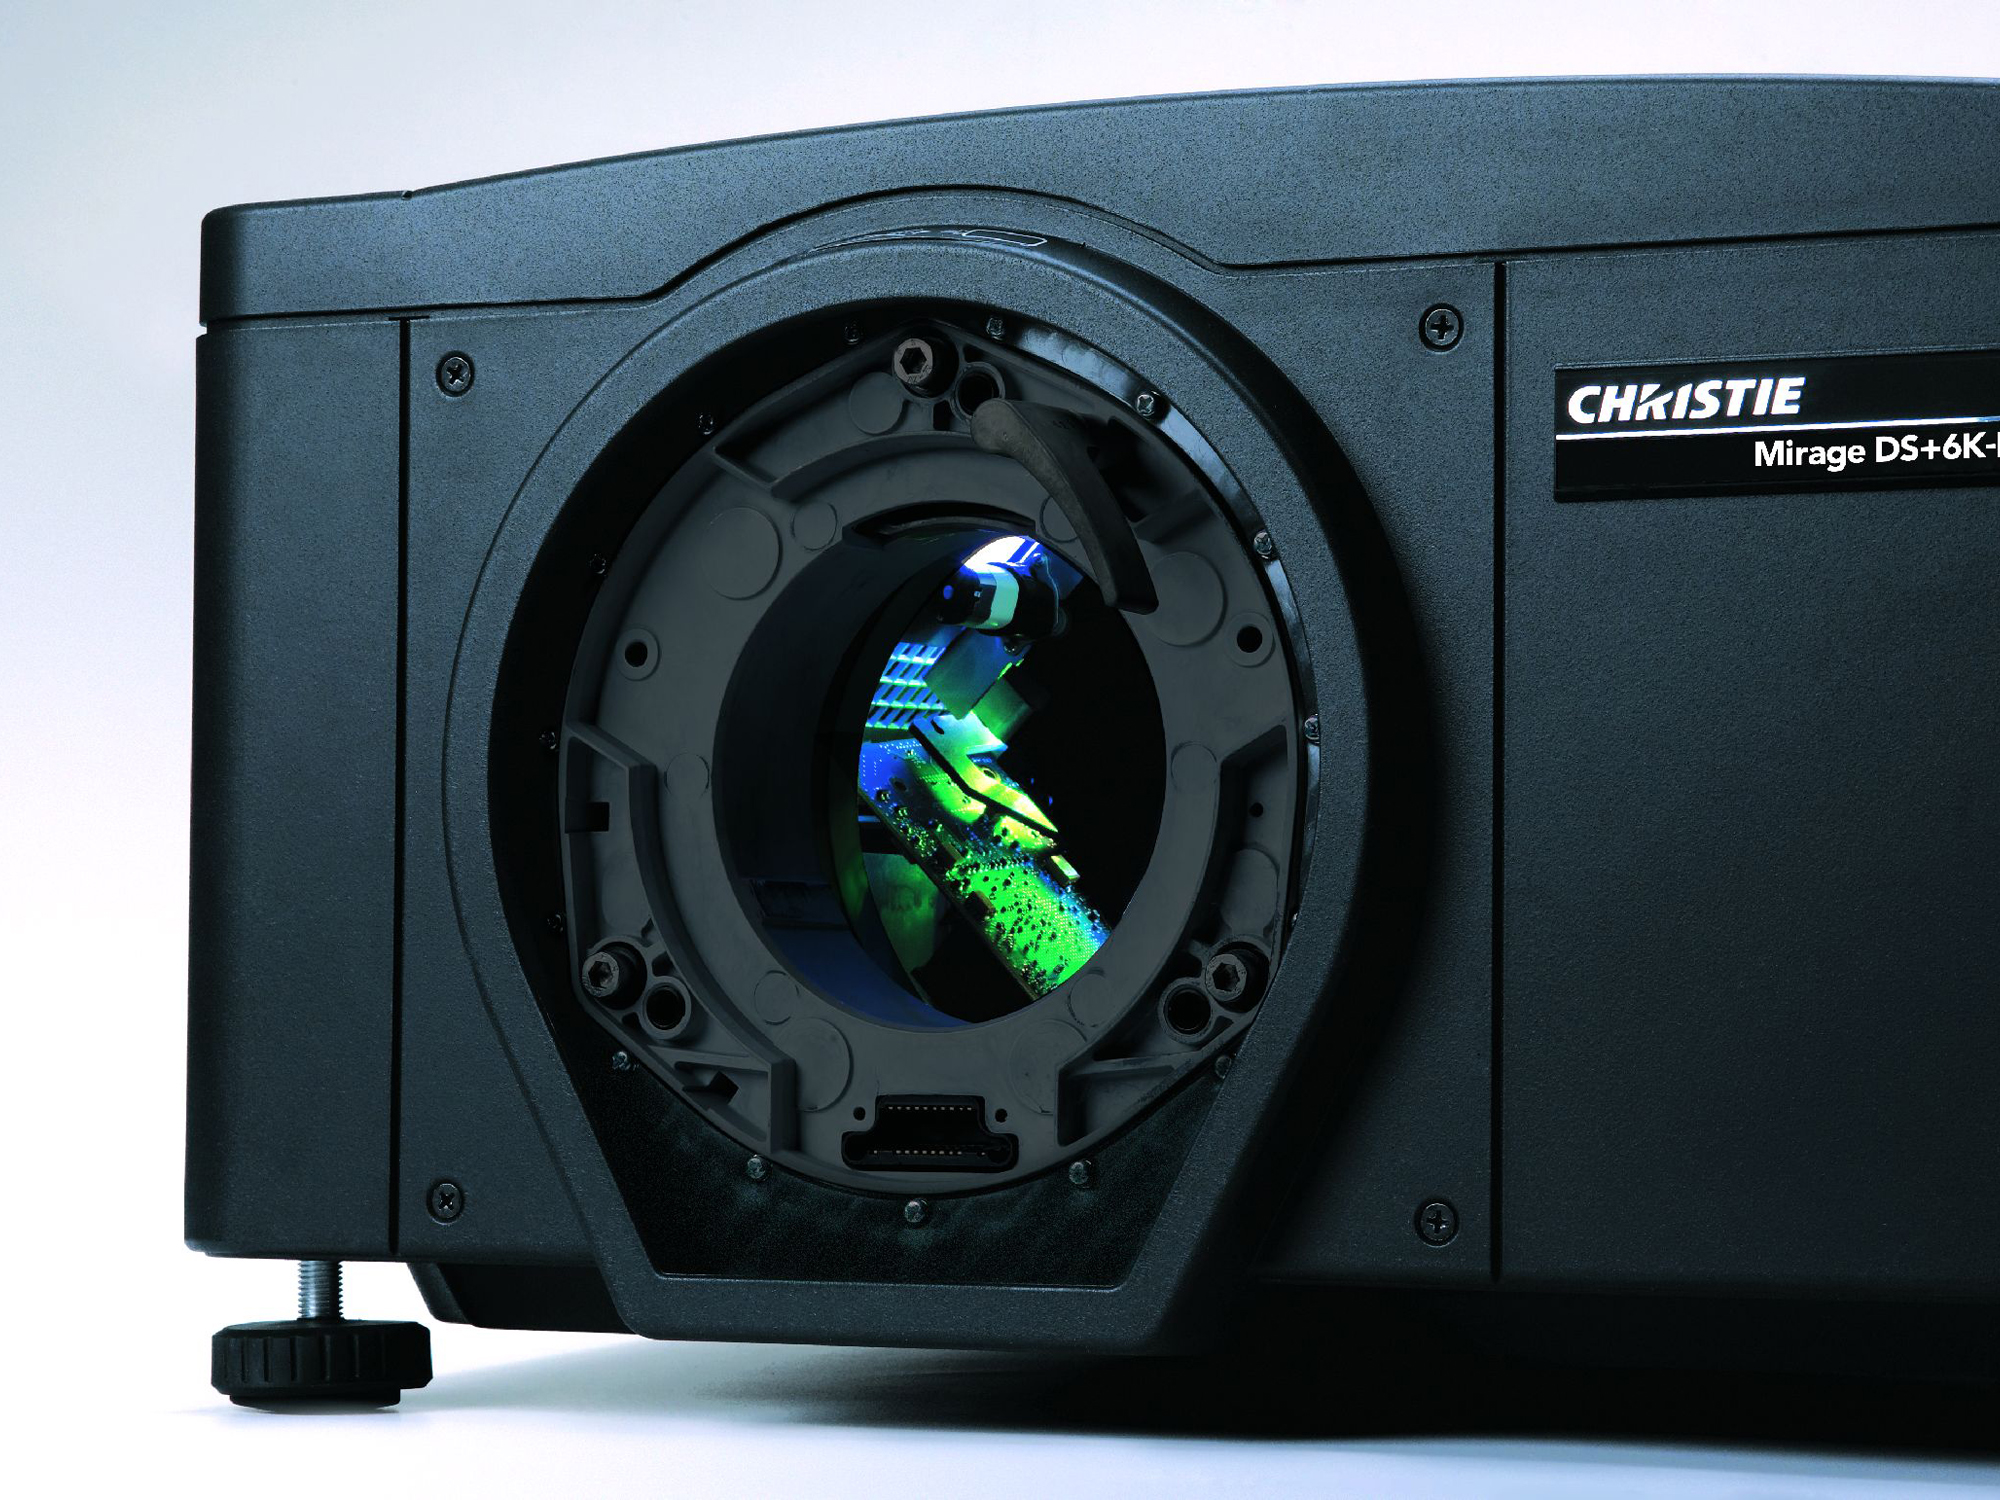 /globalassets/.catalog/products/images/mirage-ds6k-m/gallery/mirage-ds6k-m-digital-projector-lensmount1.jpg